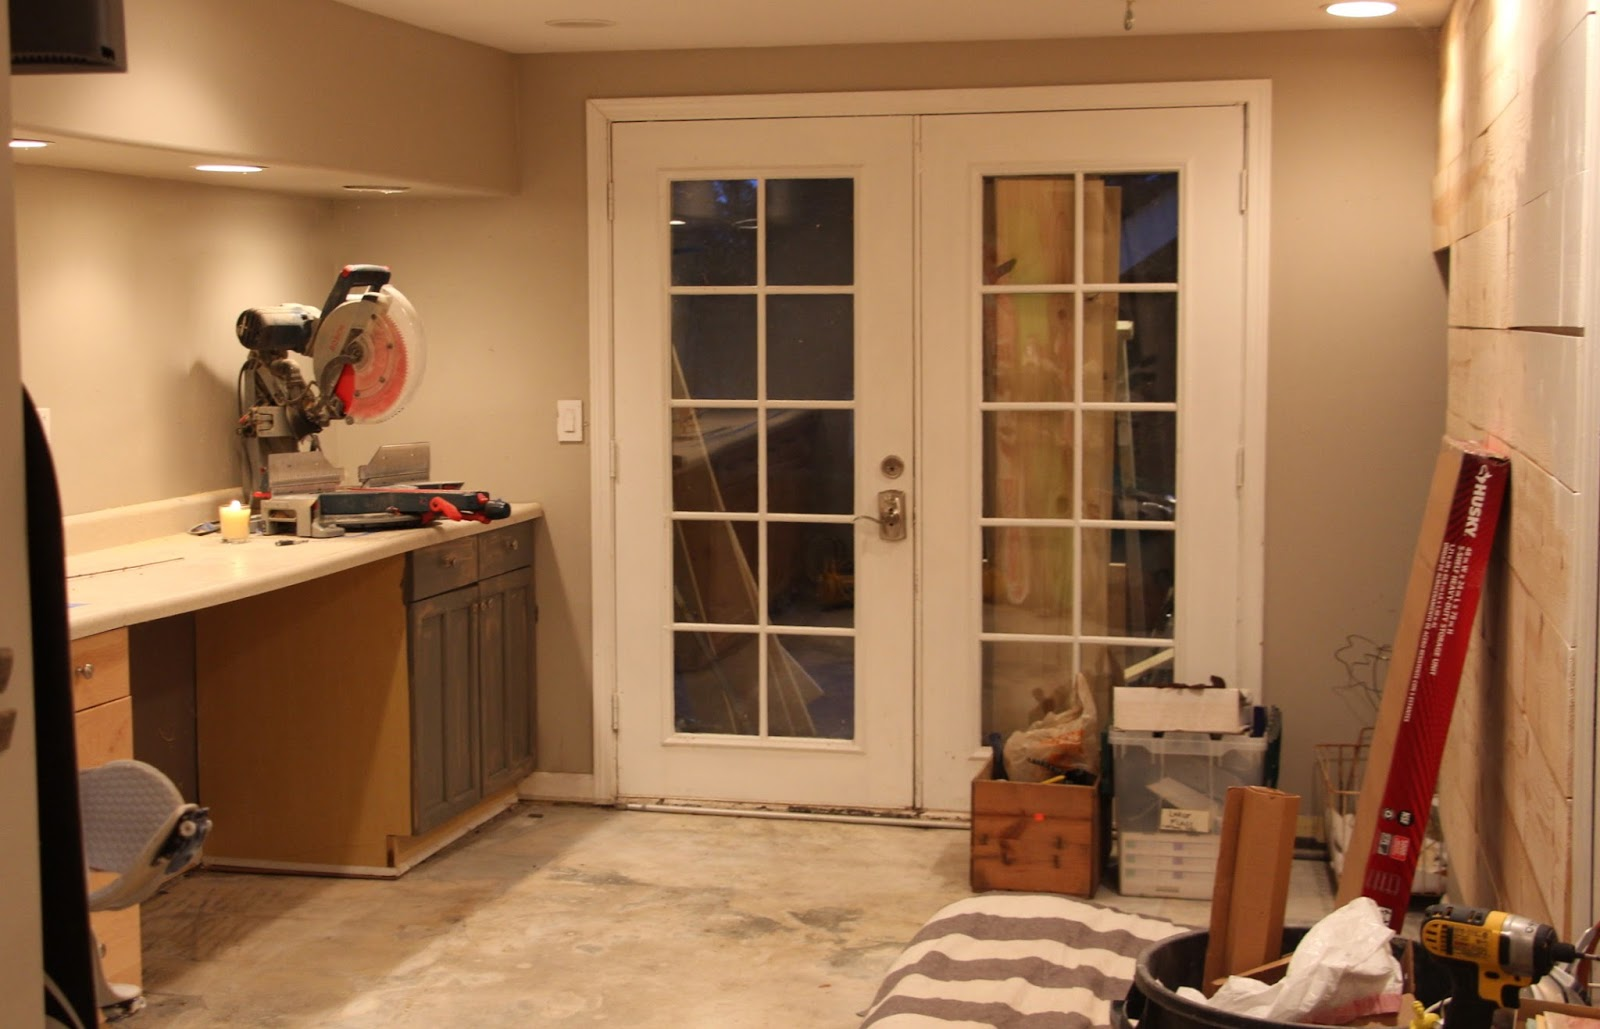 My sweet savannah painting interior doors black - The Plan For Next Week Is To Finish Planking The Walls And Paint Them